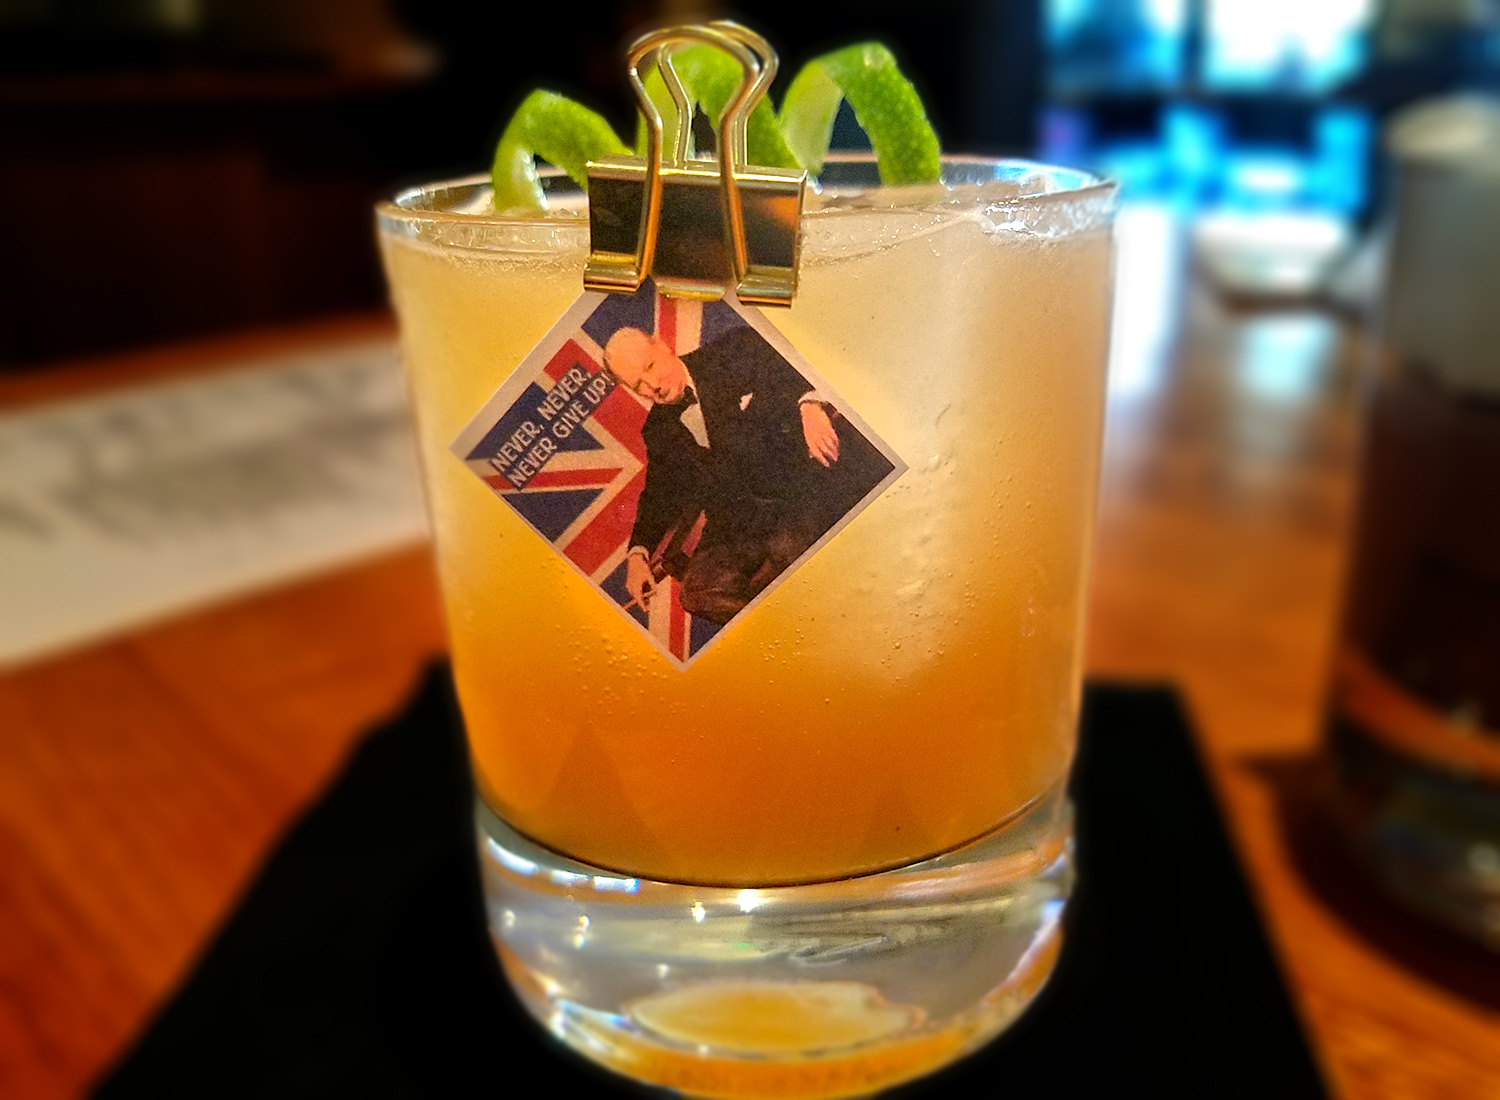 The Churchill cocktail made with tequila and mezcal is a smoky ode to the British Bulldog at Perch and Plow in Santa Rosa. Heather Irwin/PD